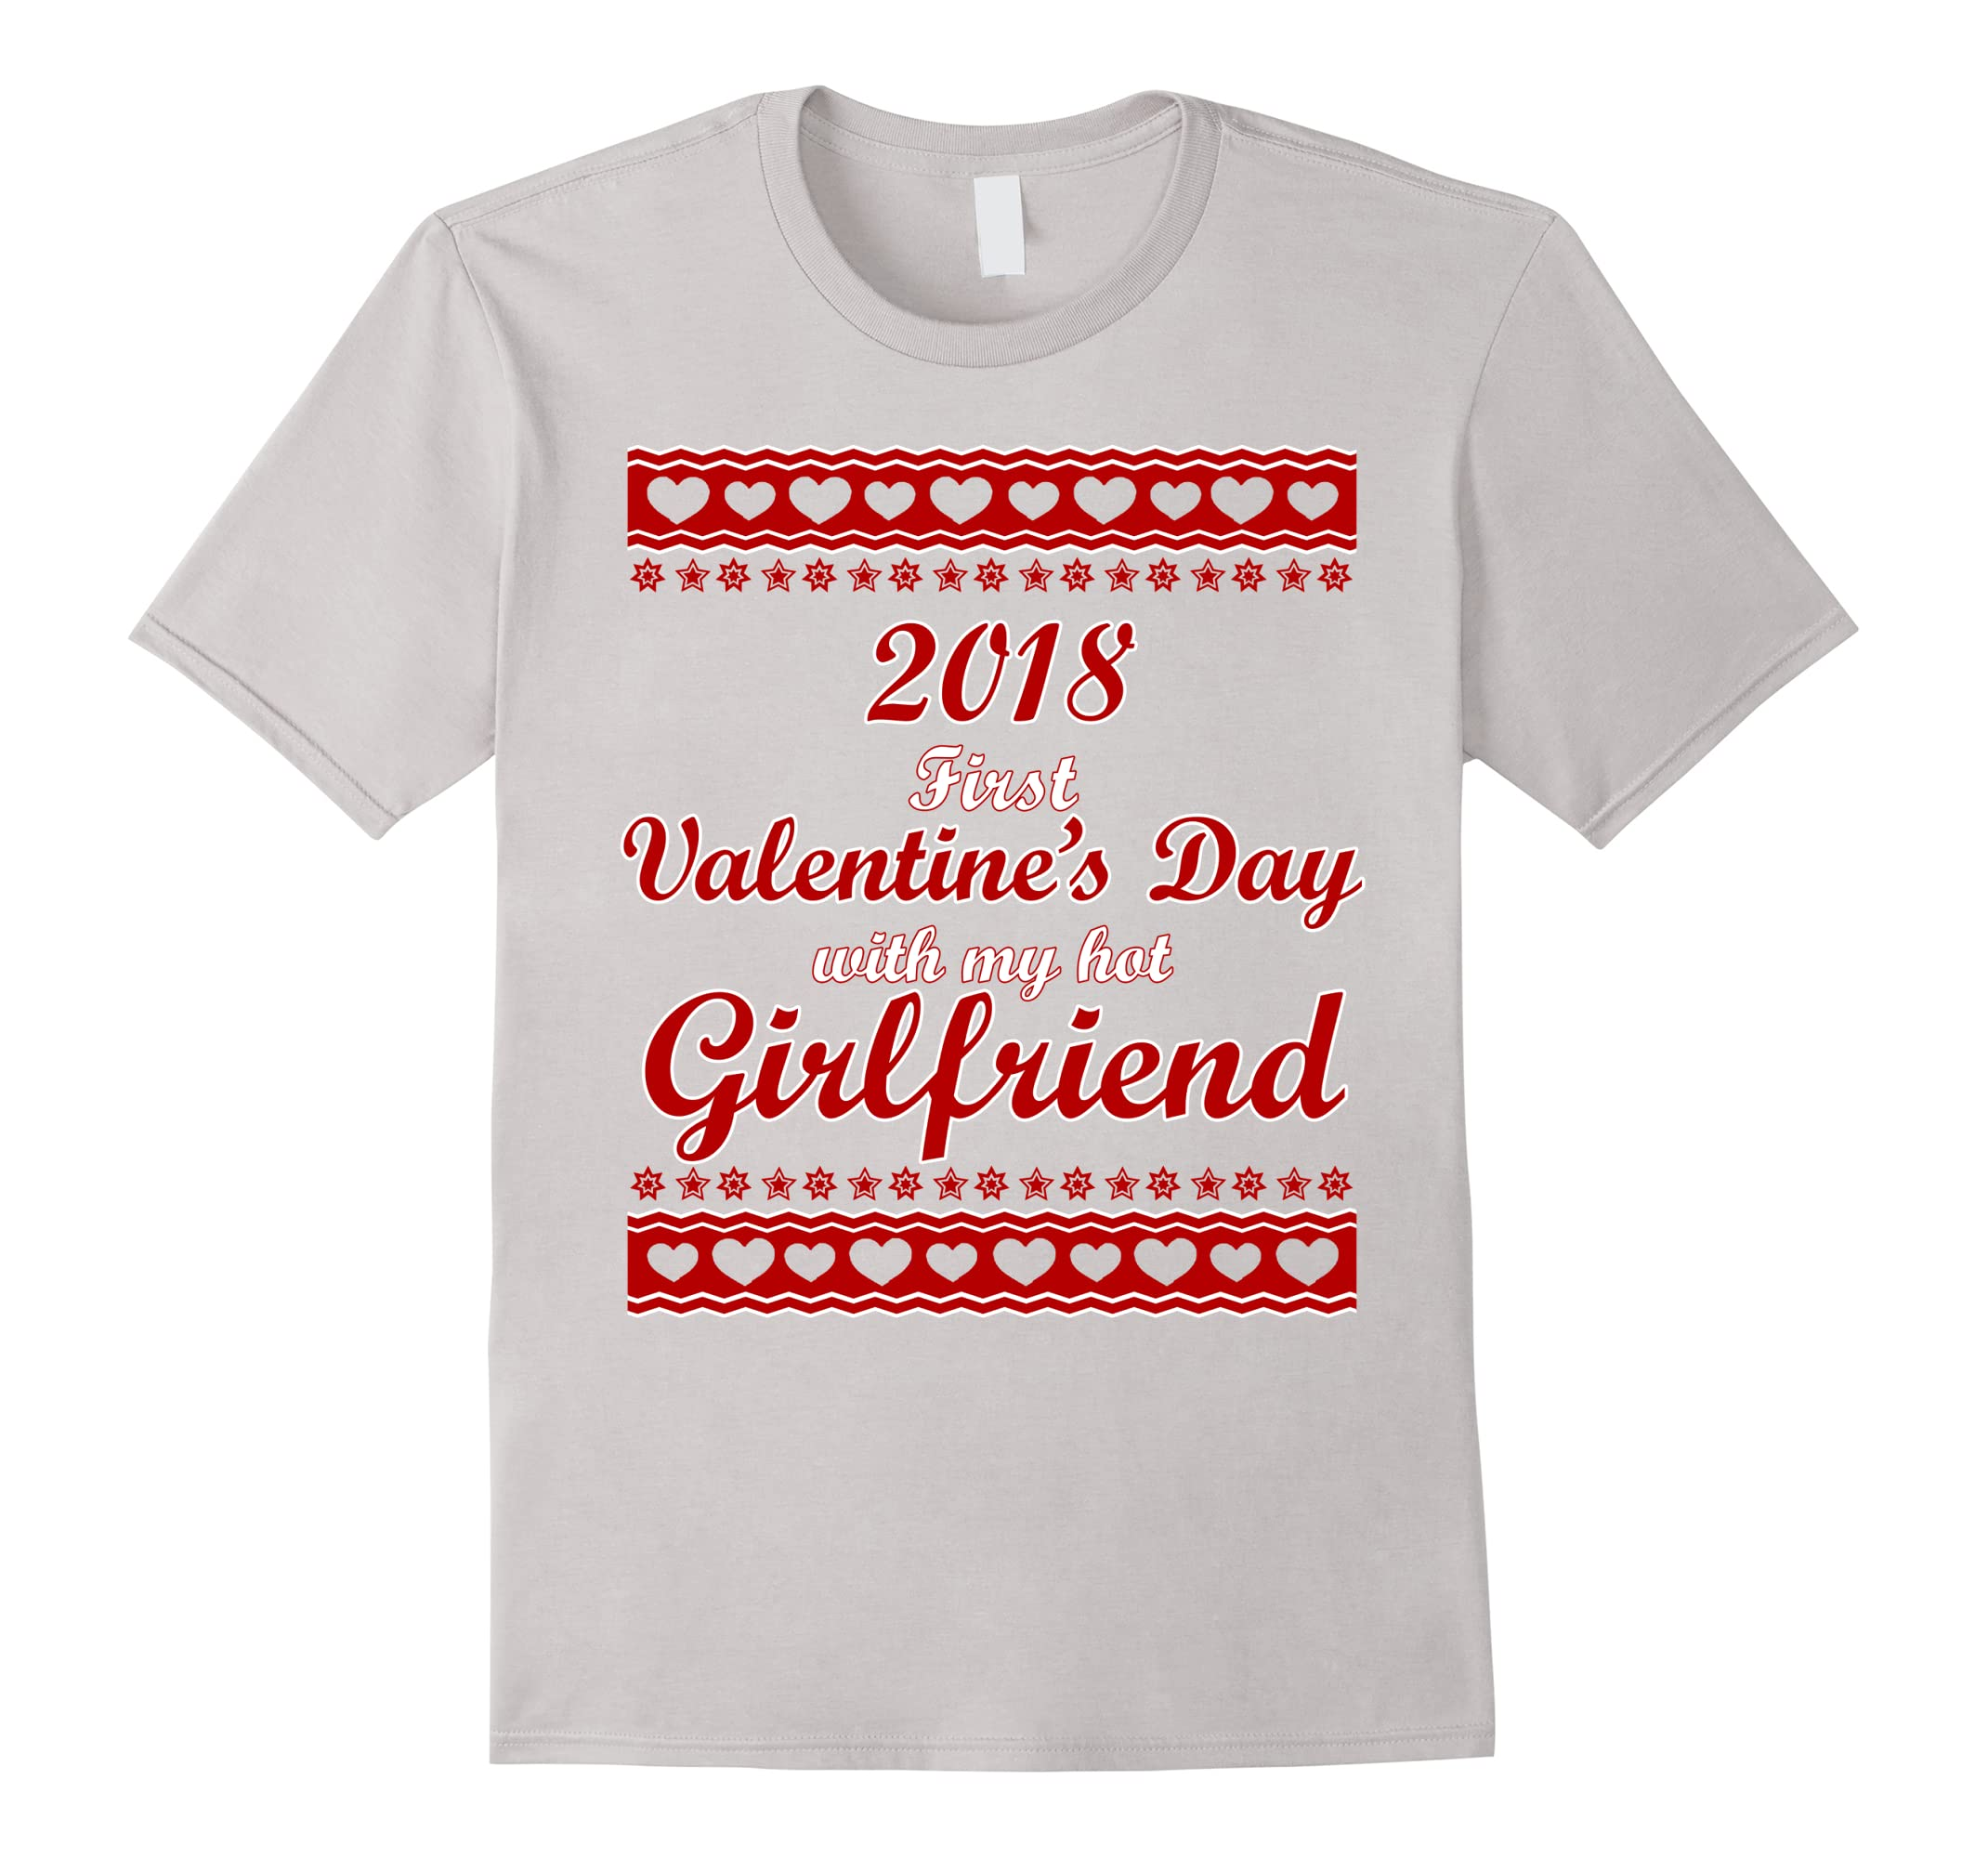 2018 First Valentine's Day with my Girlfriend-ah my shirt one gift